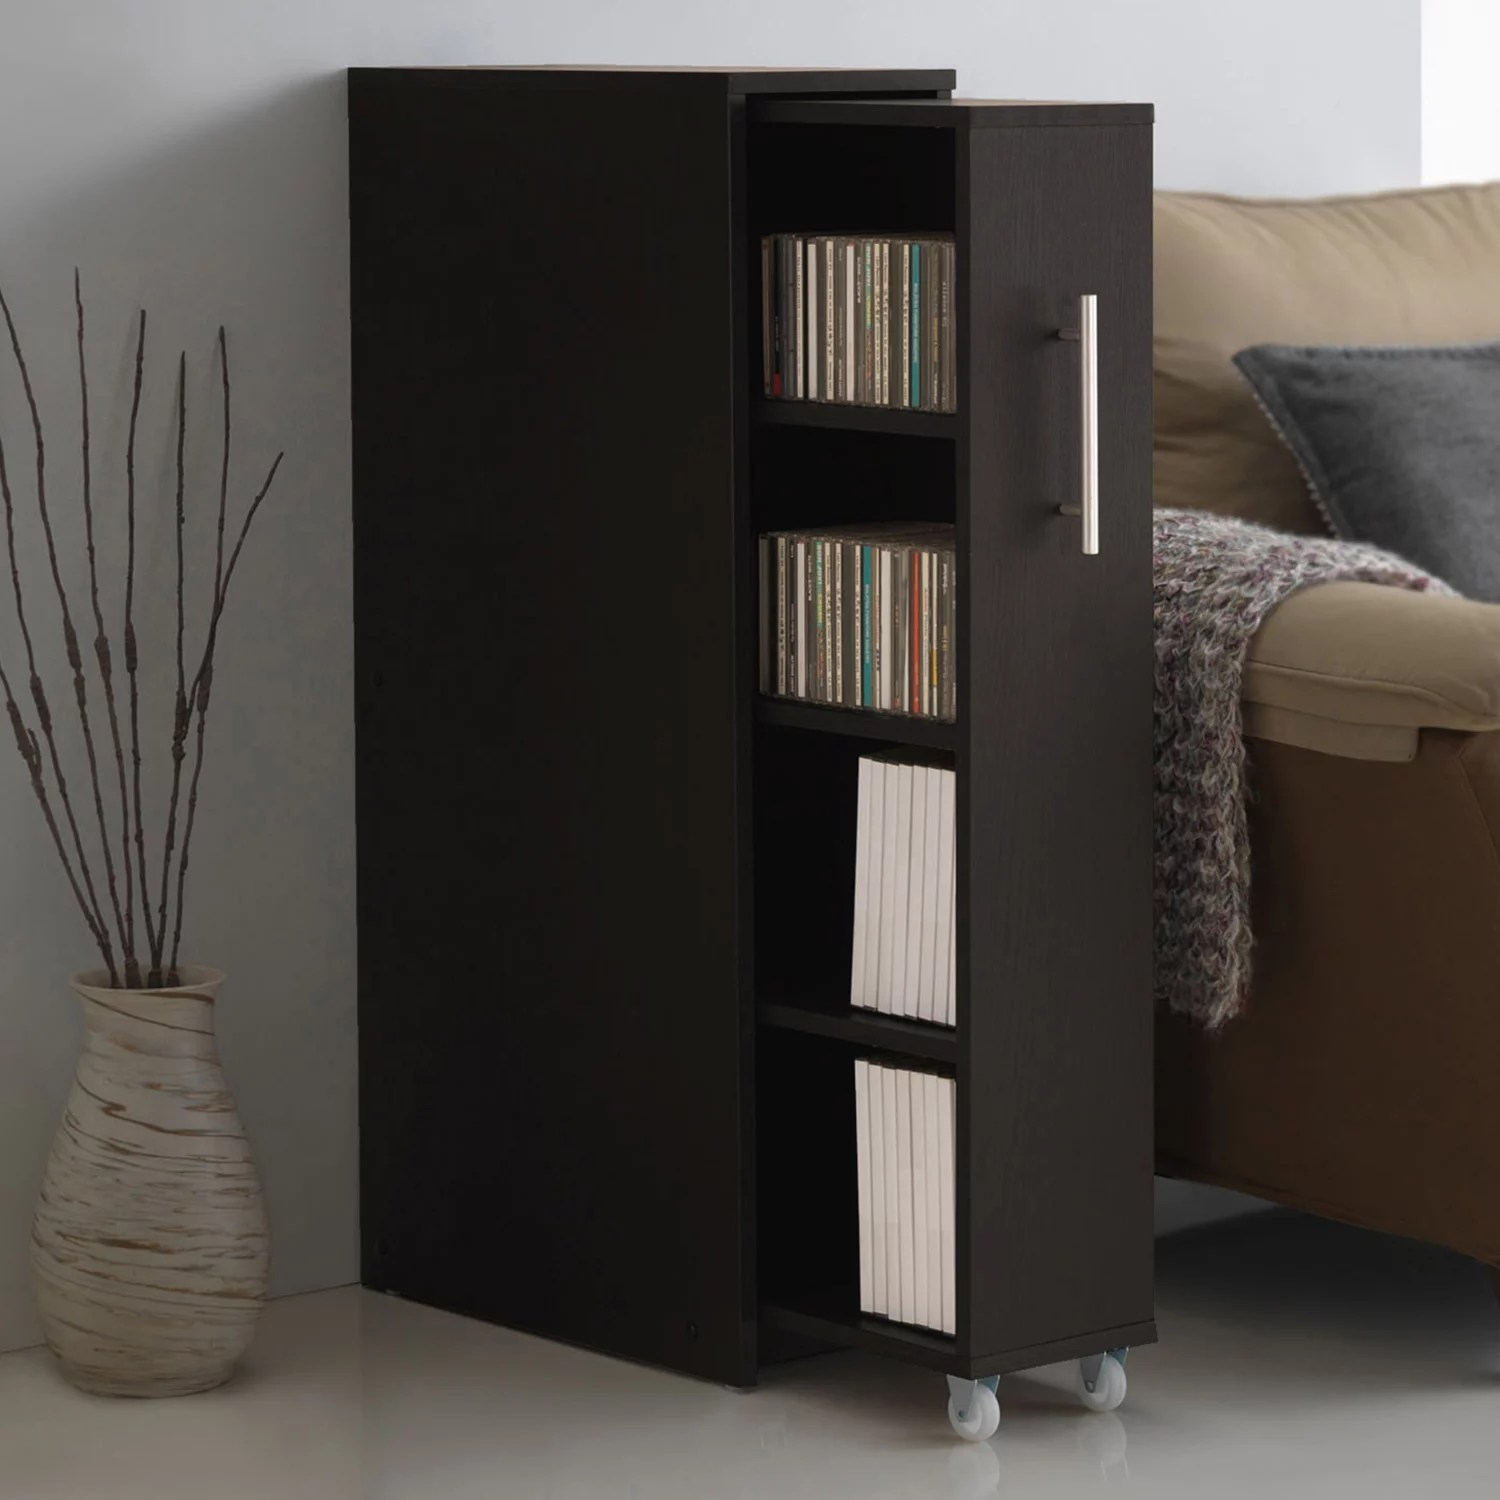 Bookcase Cabinet Baxton Studio Lindo Bookcase Single Pull Out Shelving Cabinet